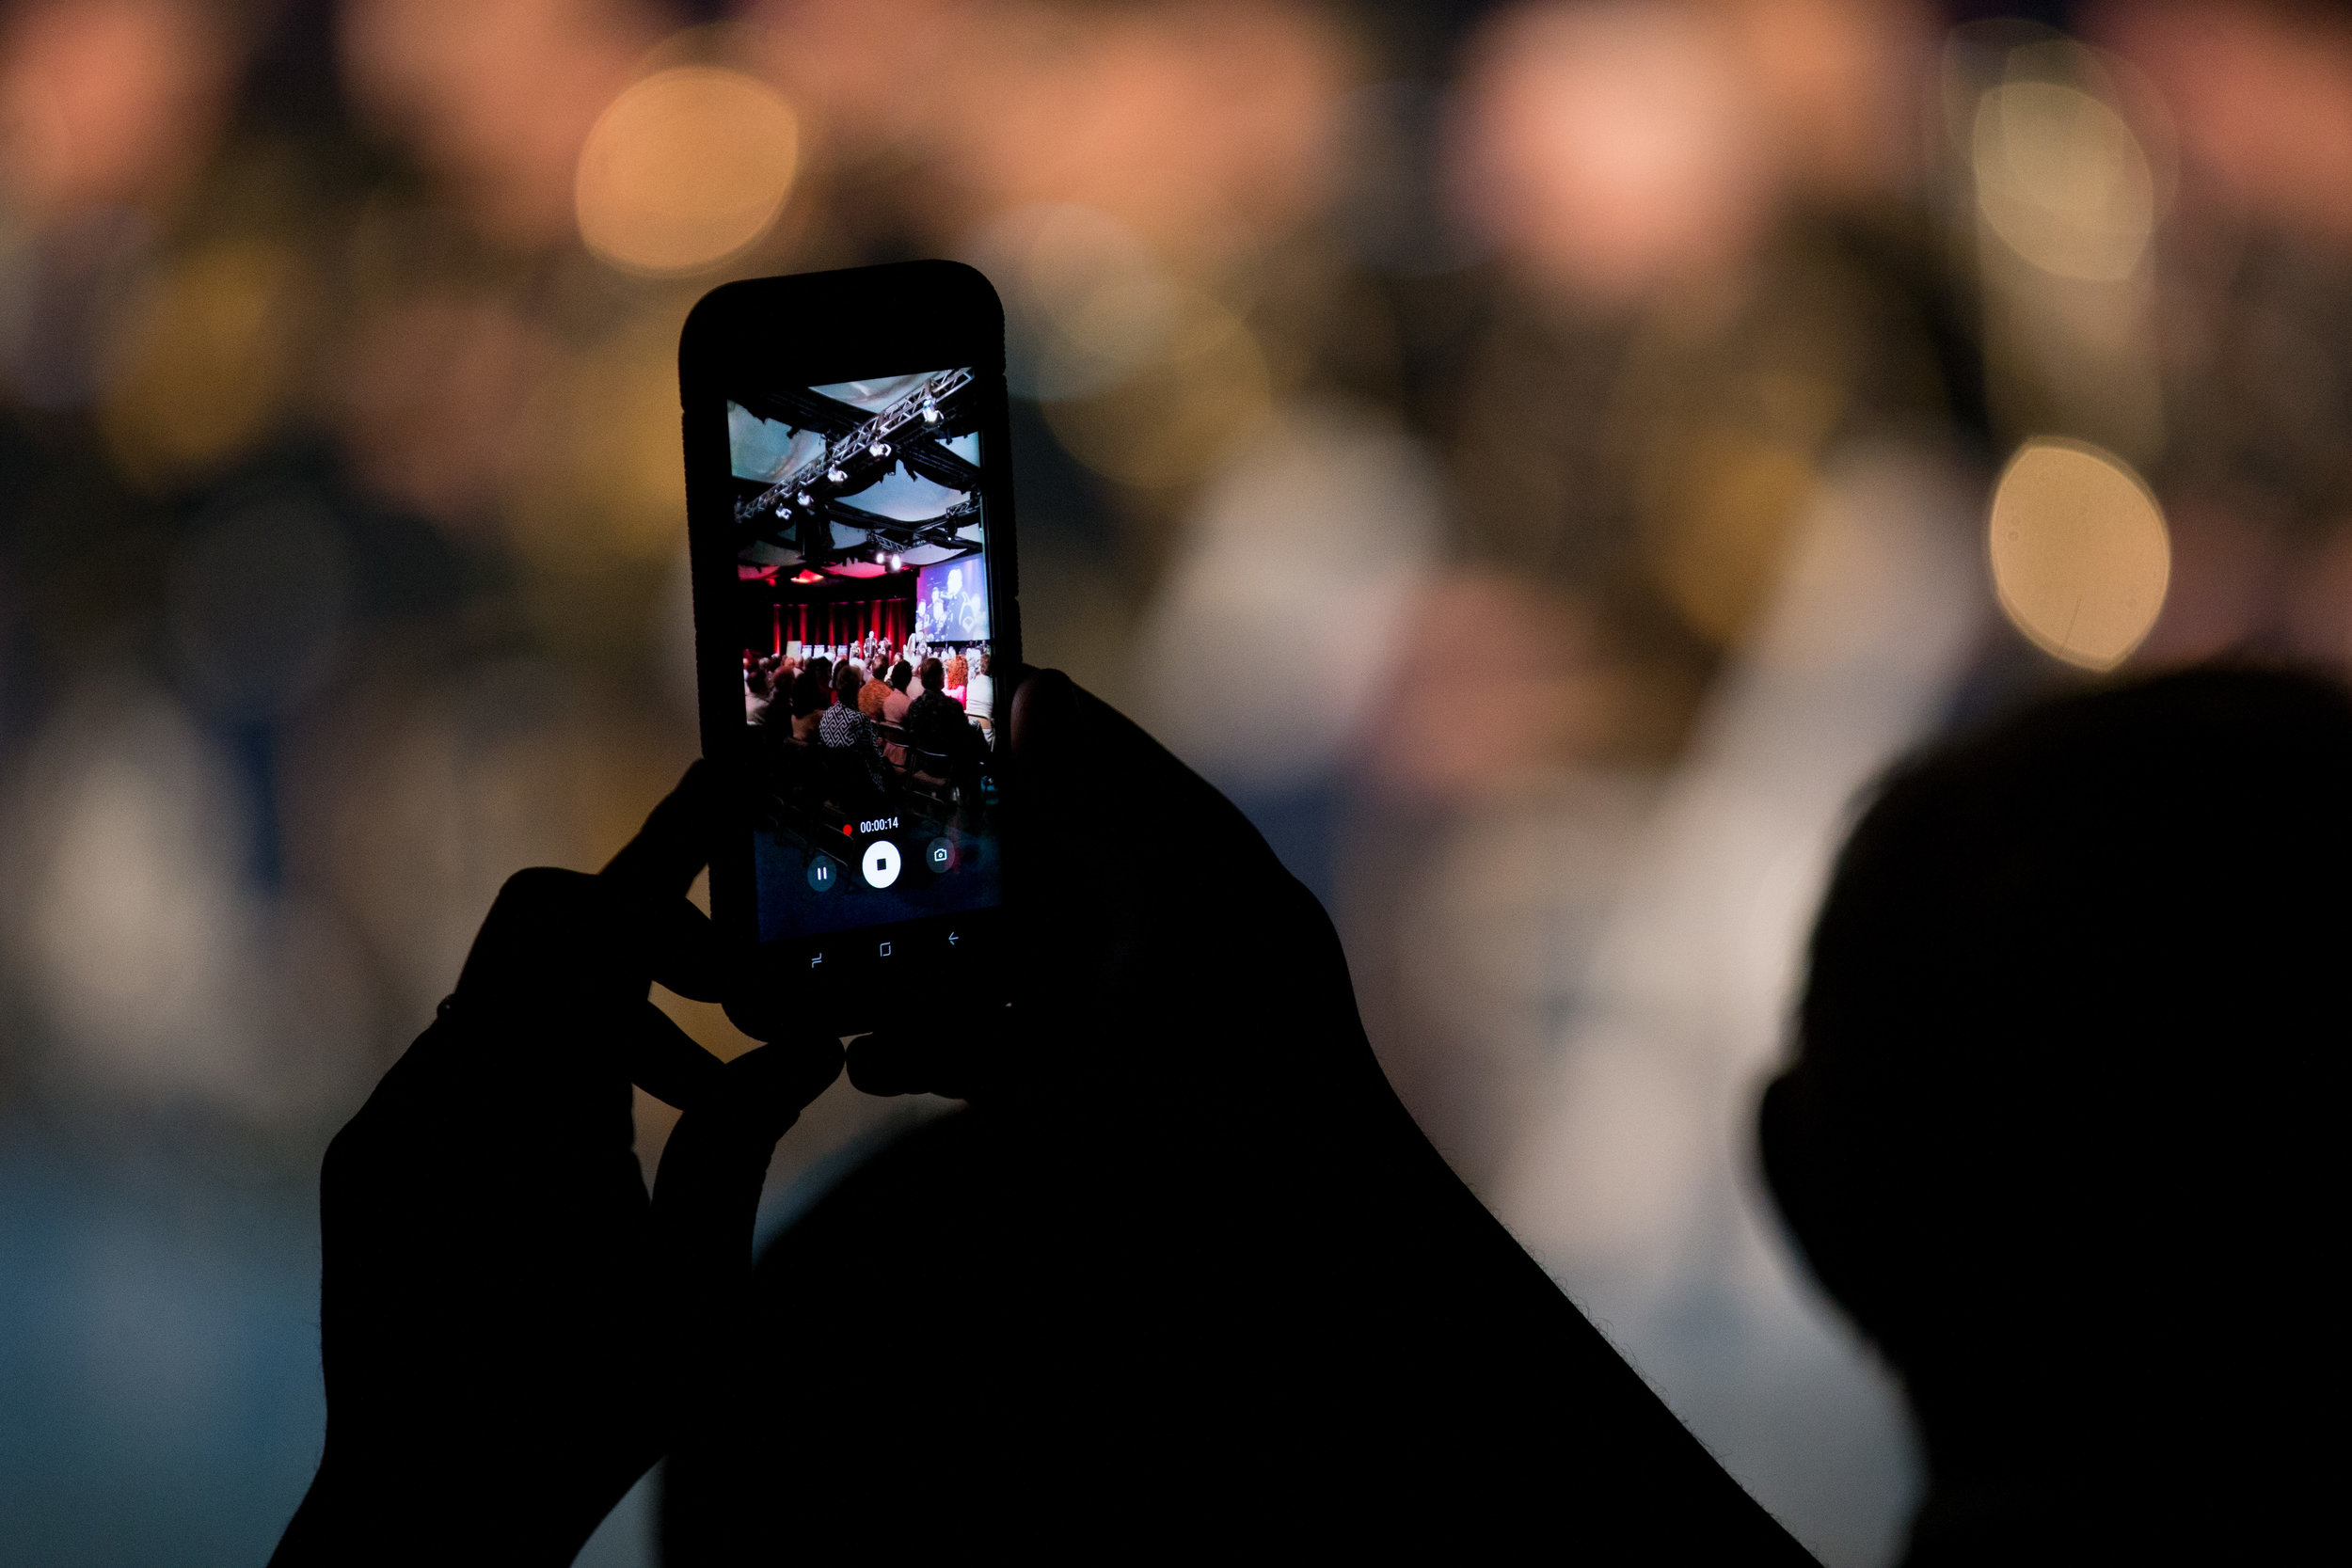 A concert goer records the performance with a cell phone at a U.S. Army Band concert in Arlington, Virginia.